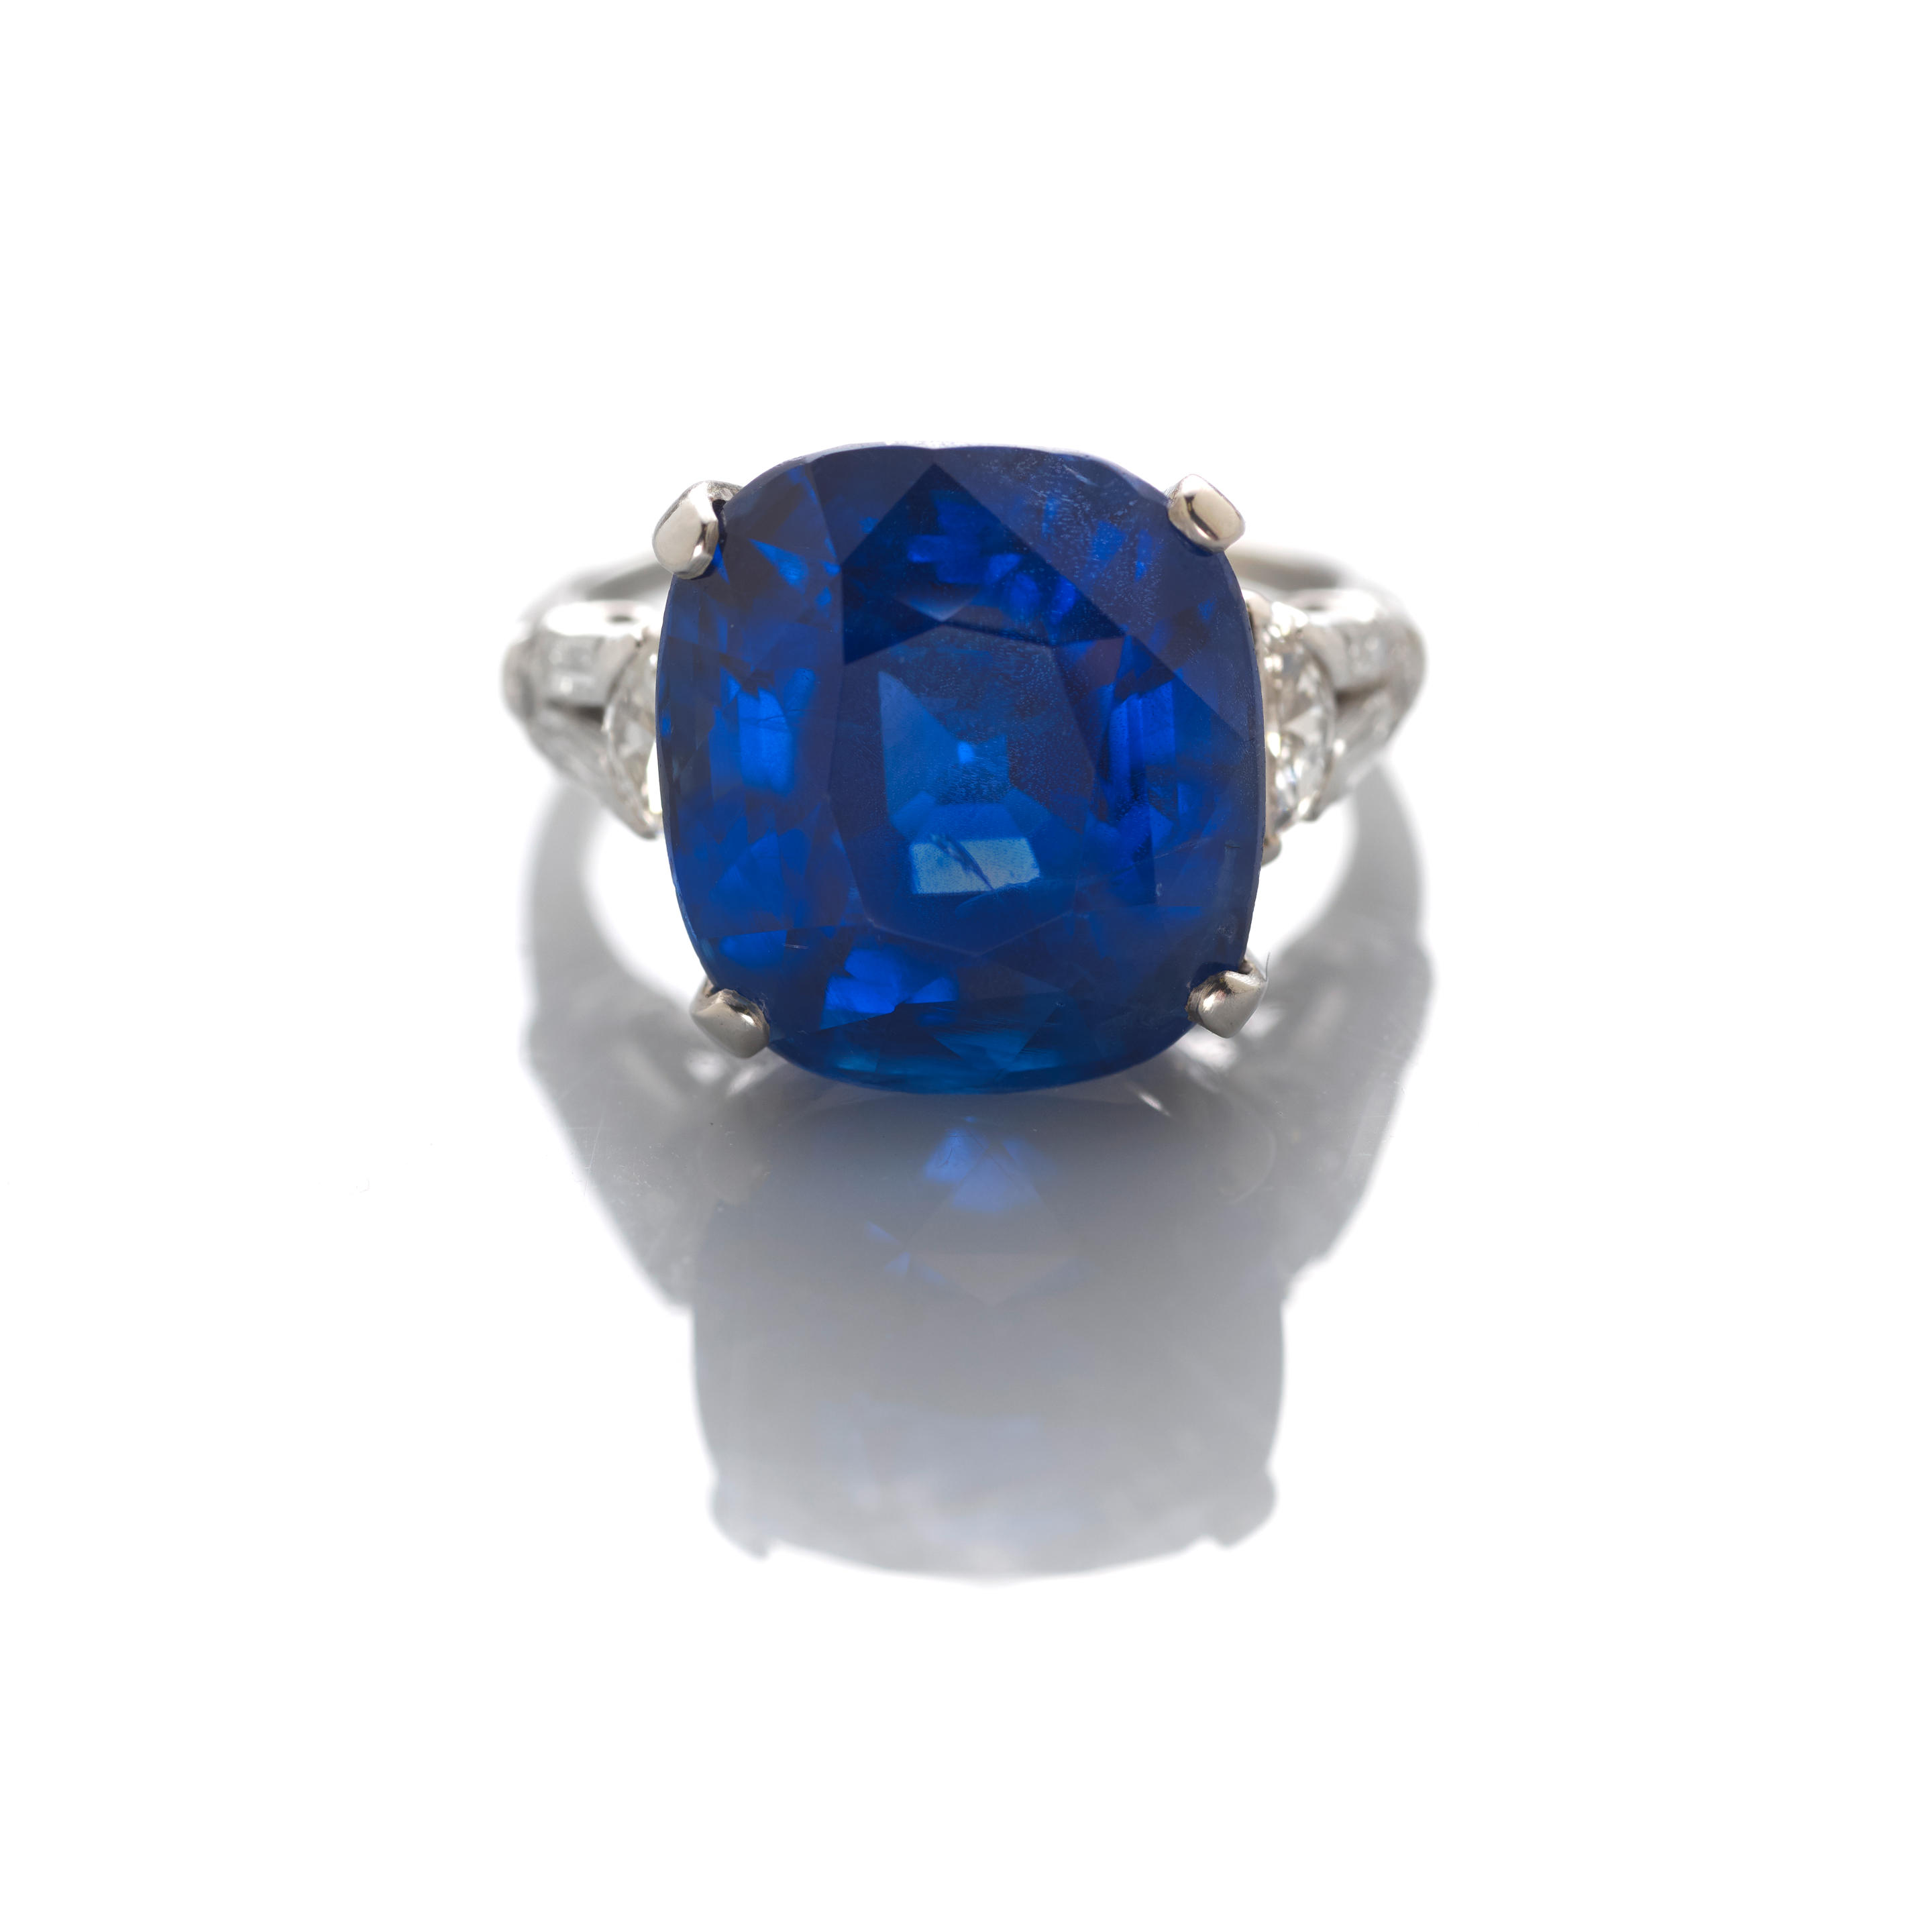 Fine Sapphire and Diamond Ring by J. E. CALDWELL & CO.